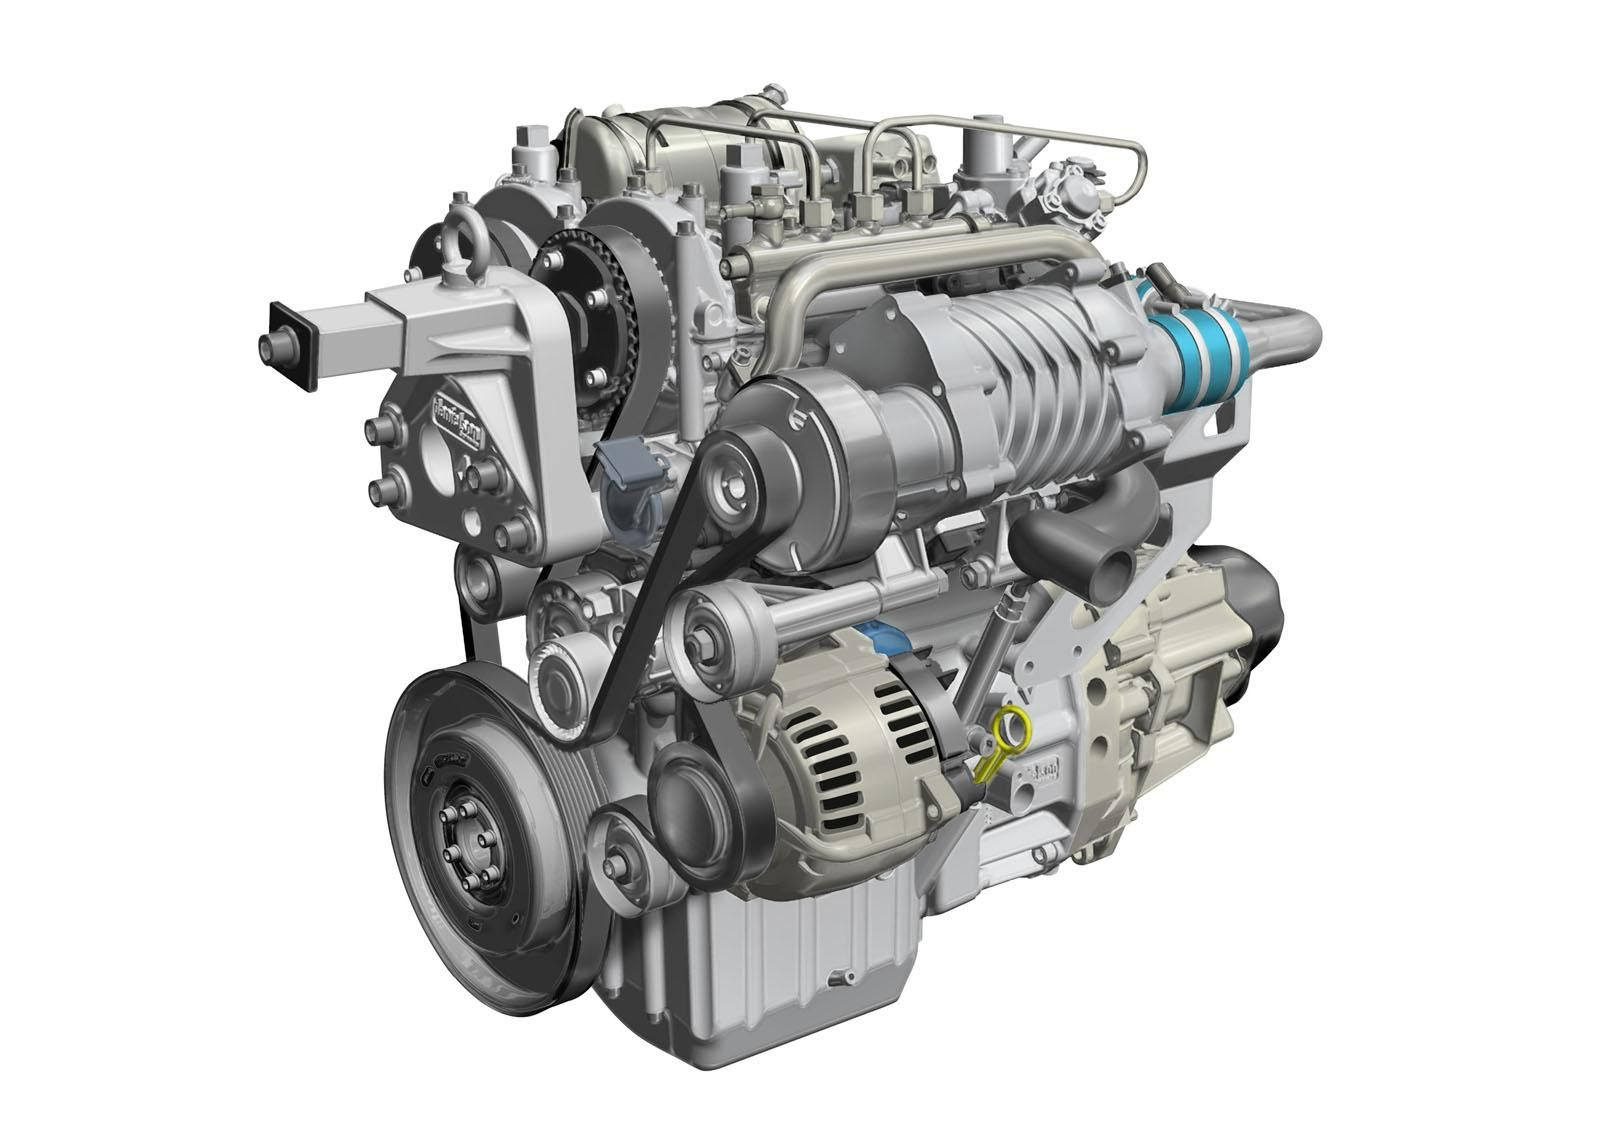 Renault development 730cc 2 cylinder 2 stroke diesel turbo charged and supercharged http